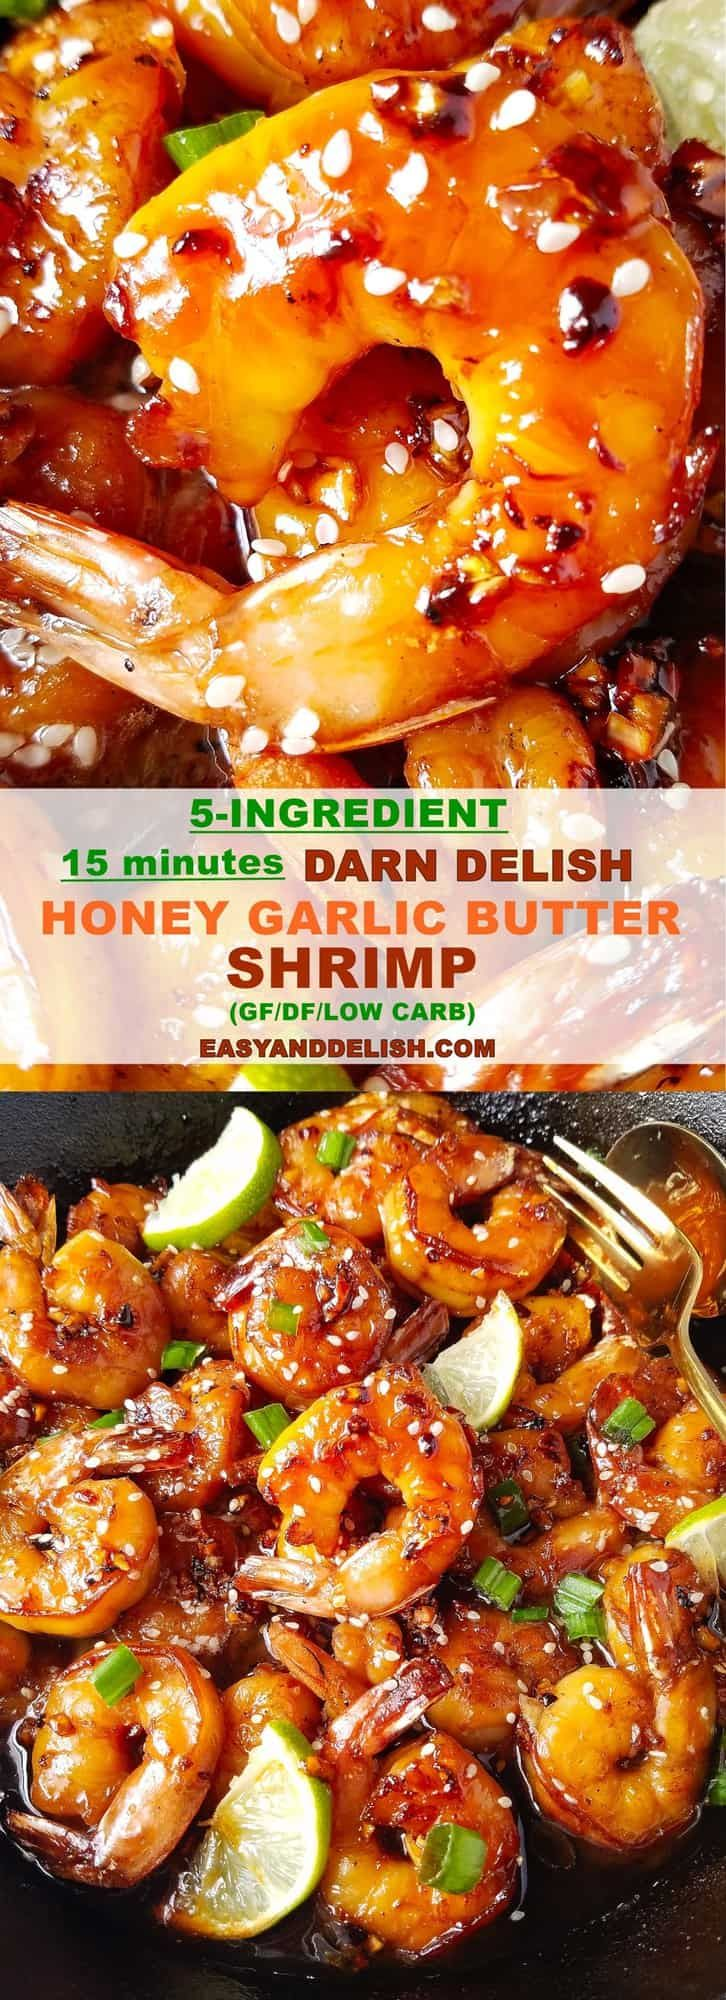 Honey Garlic Butter Shrimp Skillet Recipe (5-Ingredient)